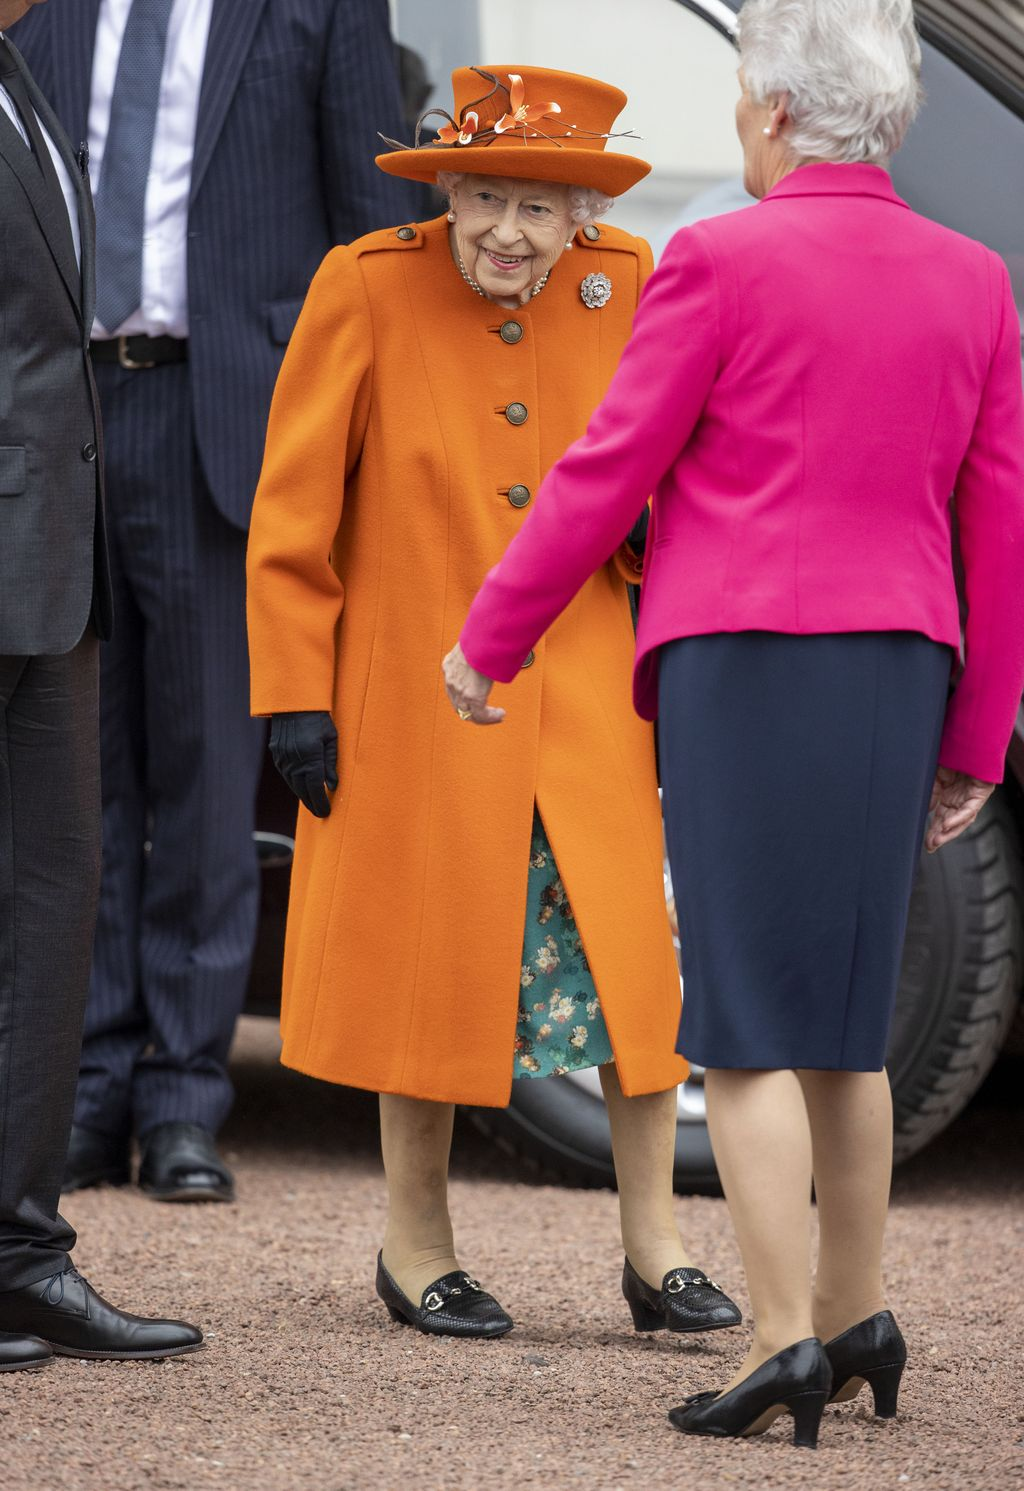 LONDON, ENGLAND - OCTOBER 12: Queen Elizabeth II and Princess Anne, Princess Royal attend a service of Thanksgiving to mark the centenary of The Royal British Legion at Westminster Abbey on October 12, 2021 in London, England. (Photo by Arthur Edwards - WPA Pool/Getty Images)